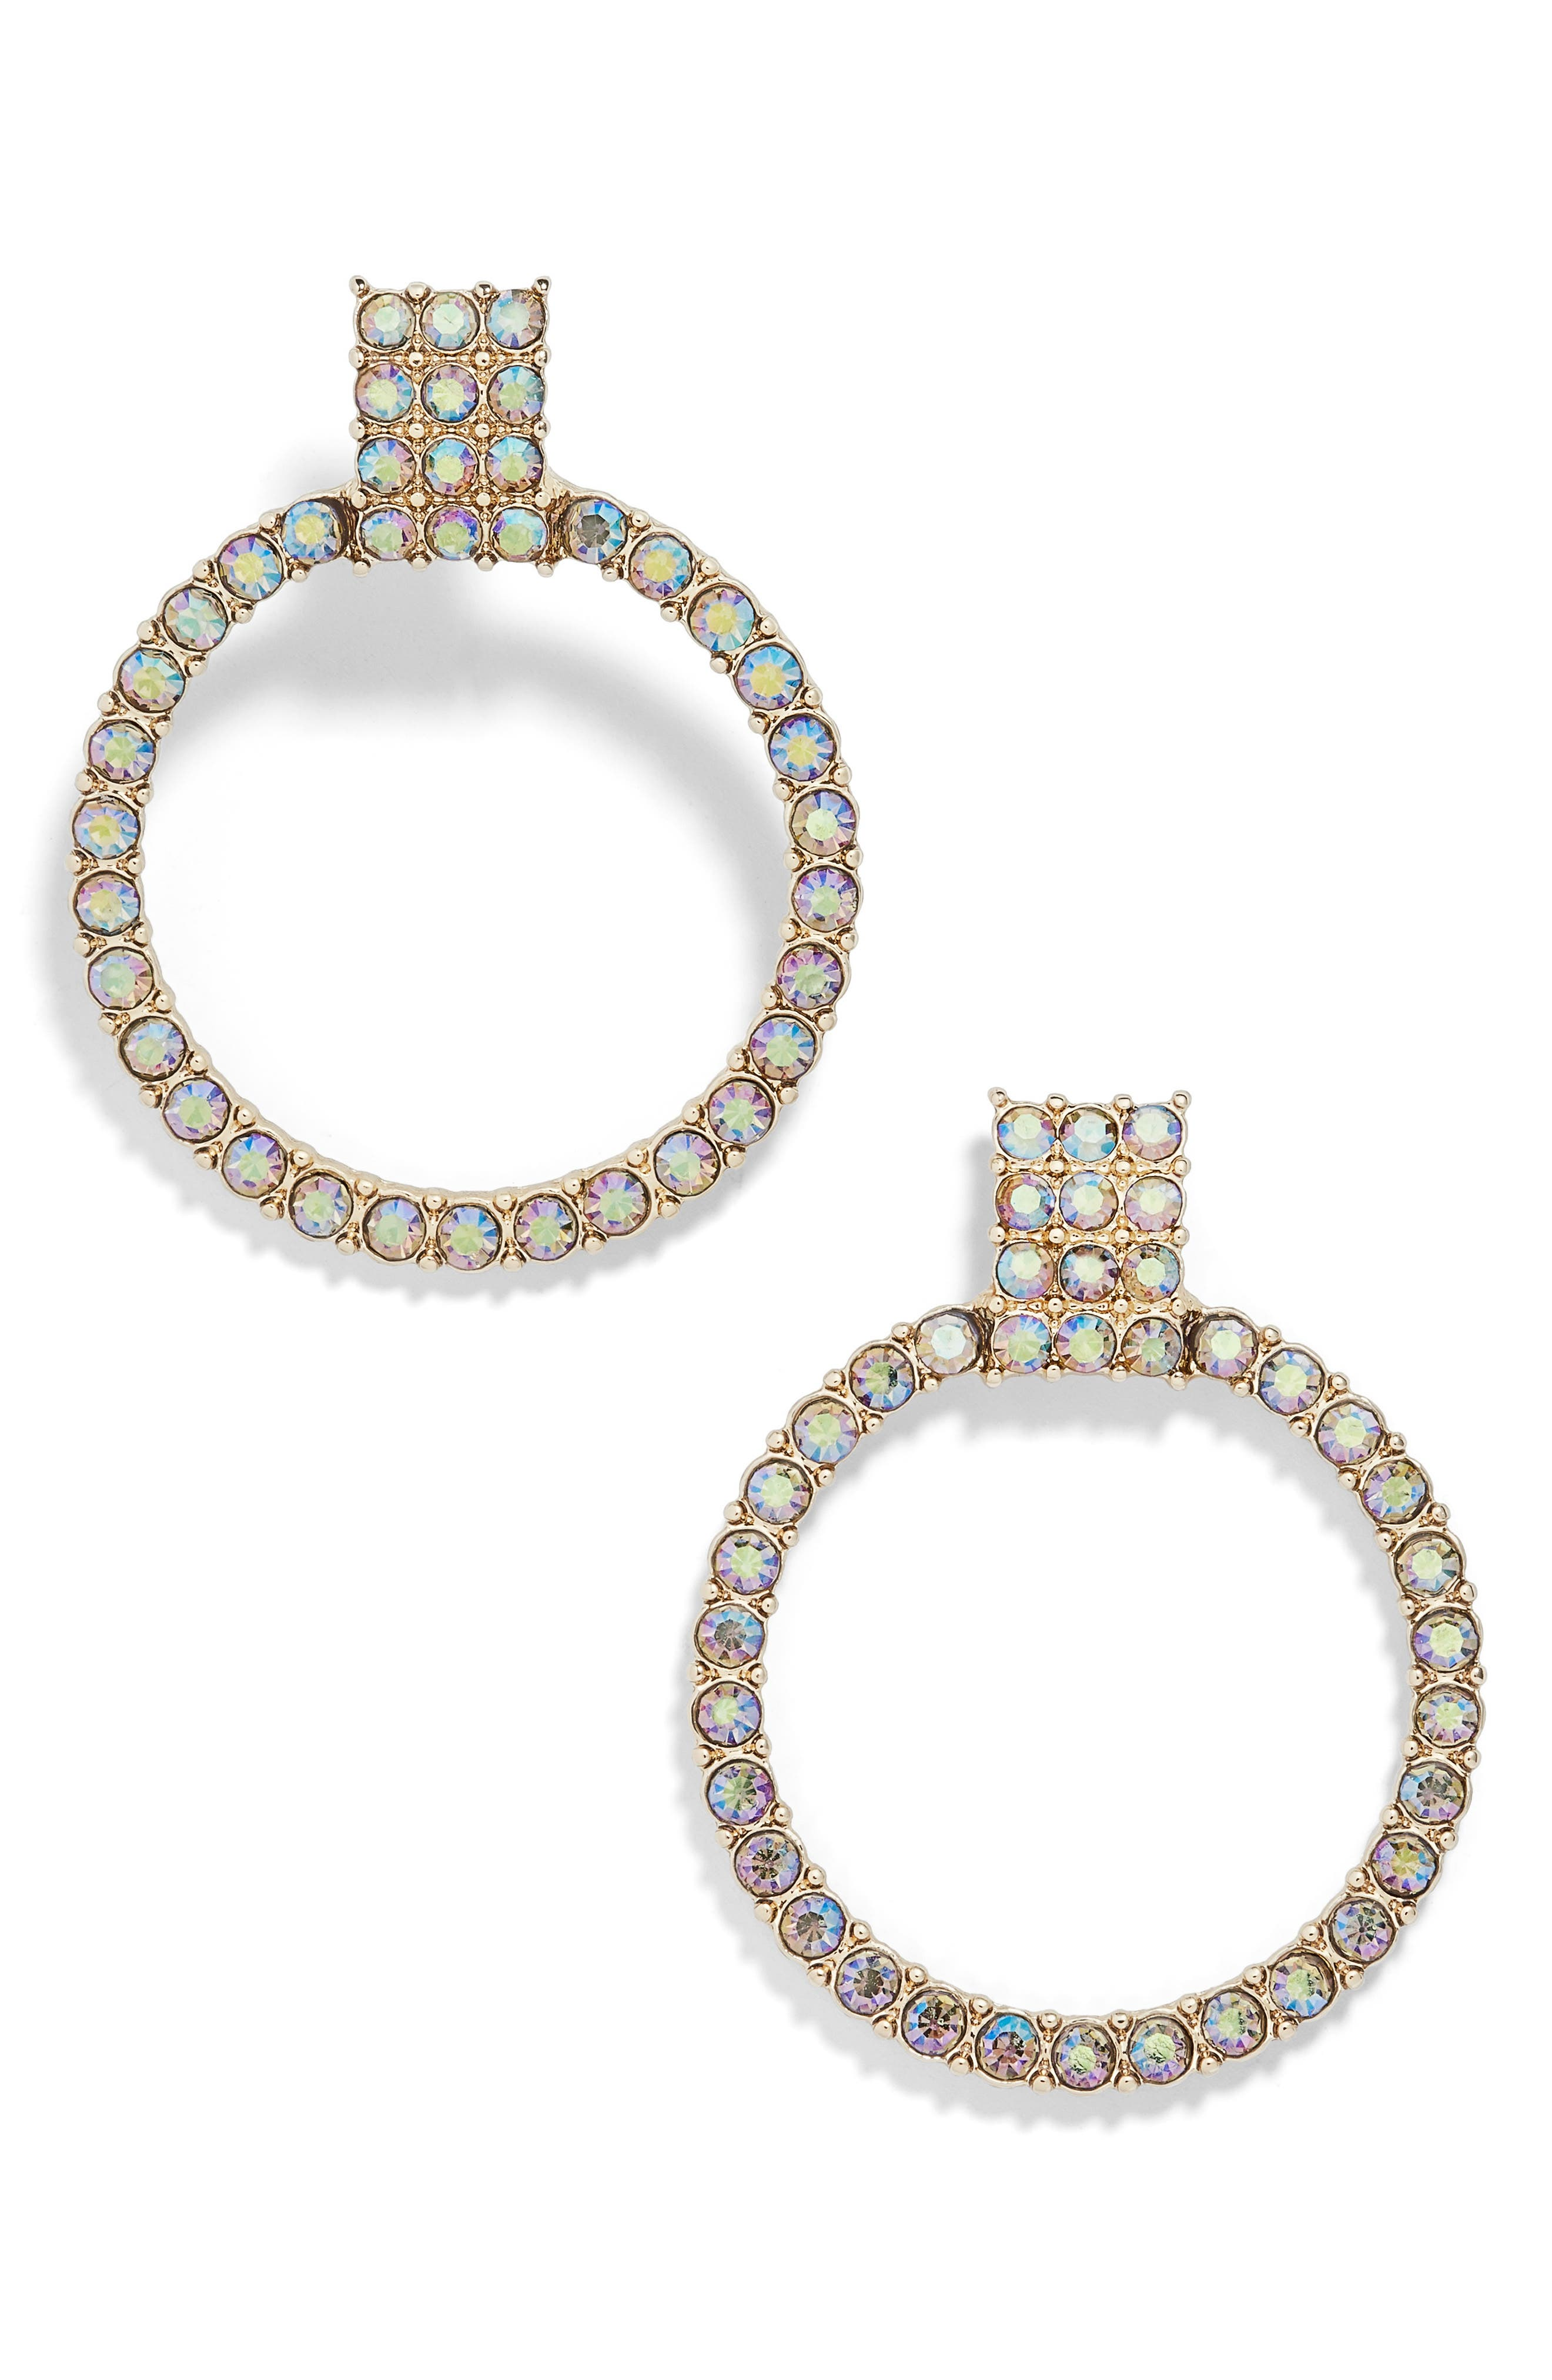 Gemma Crystal Embellished Hoop Earrings,                             Main thumbnail 1, color,                             CHAMPAGNE/ GOLD